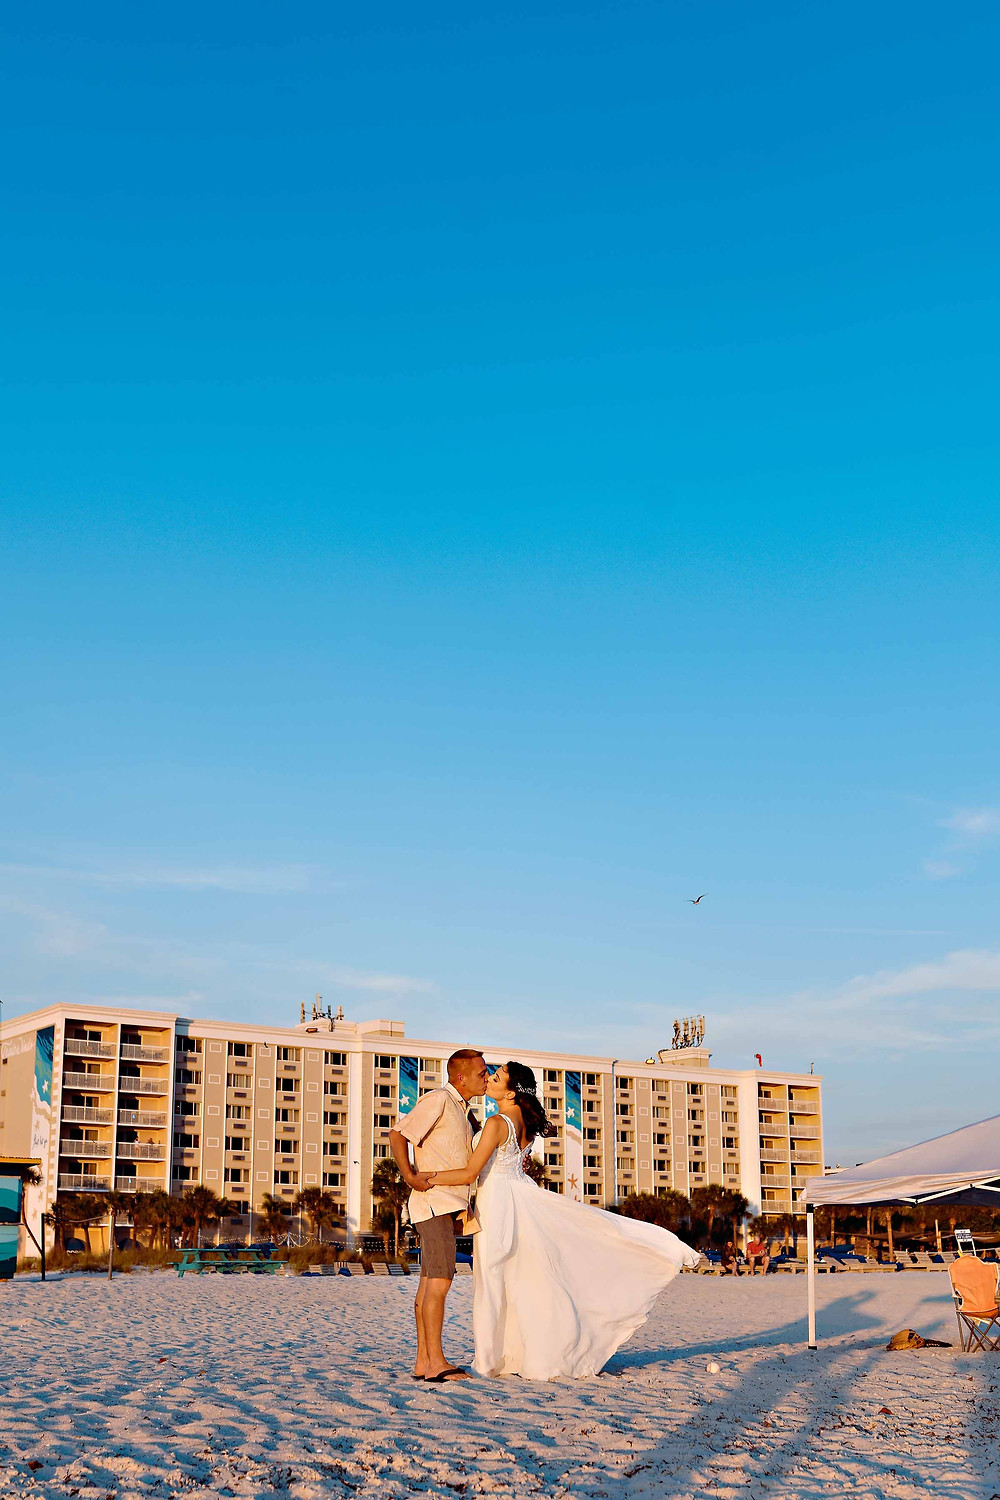 Couple dancing at sunset on the beach for their wedding